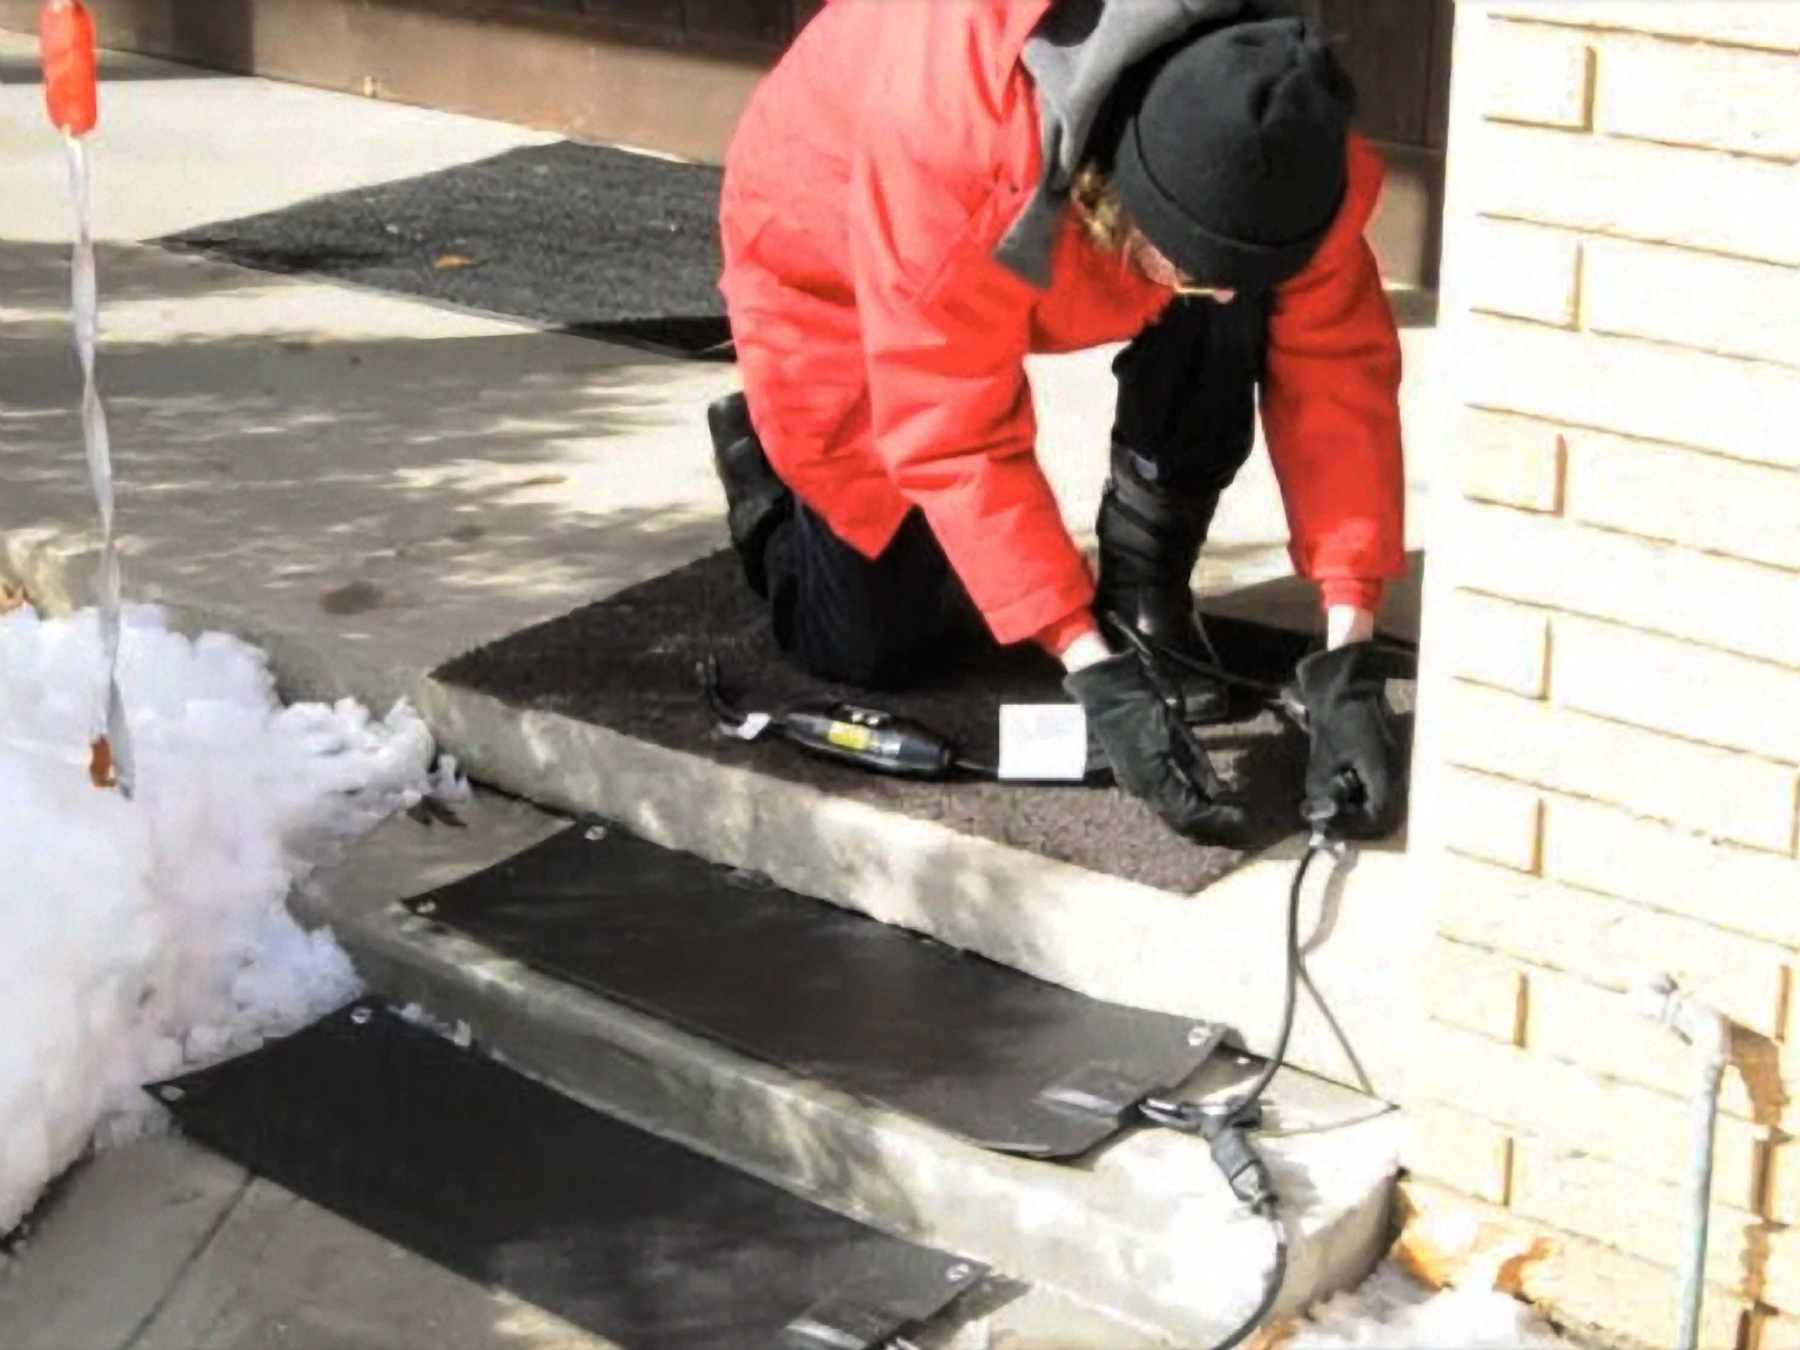 New Residential Heated Stair Tread Mats Melt Snow And Ice | Outdoor Stair Treads For Winter